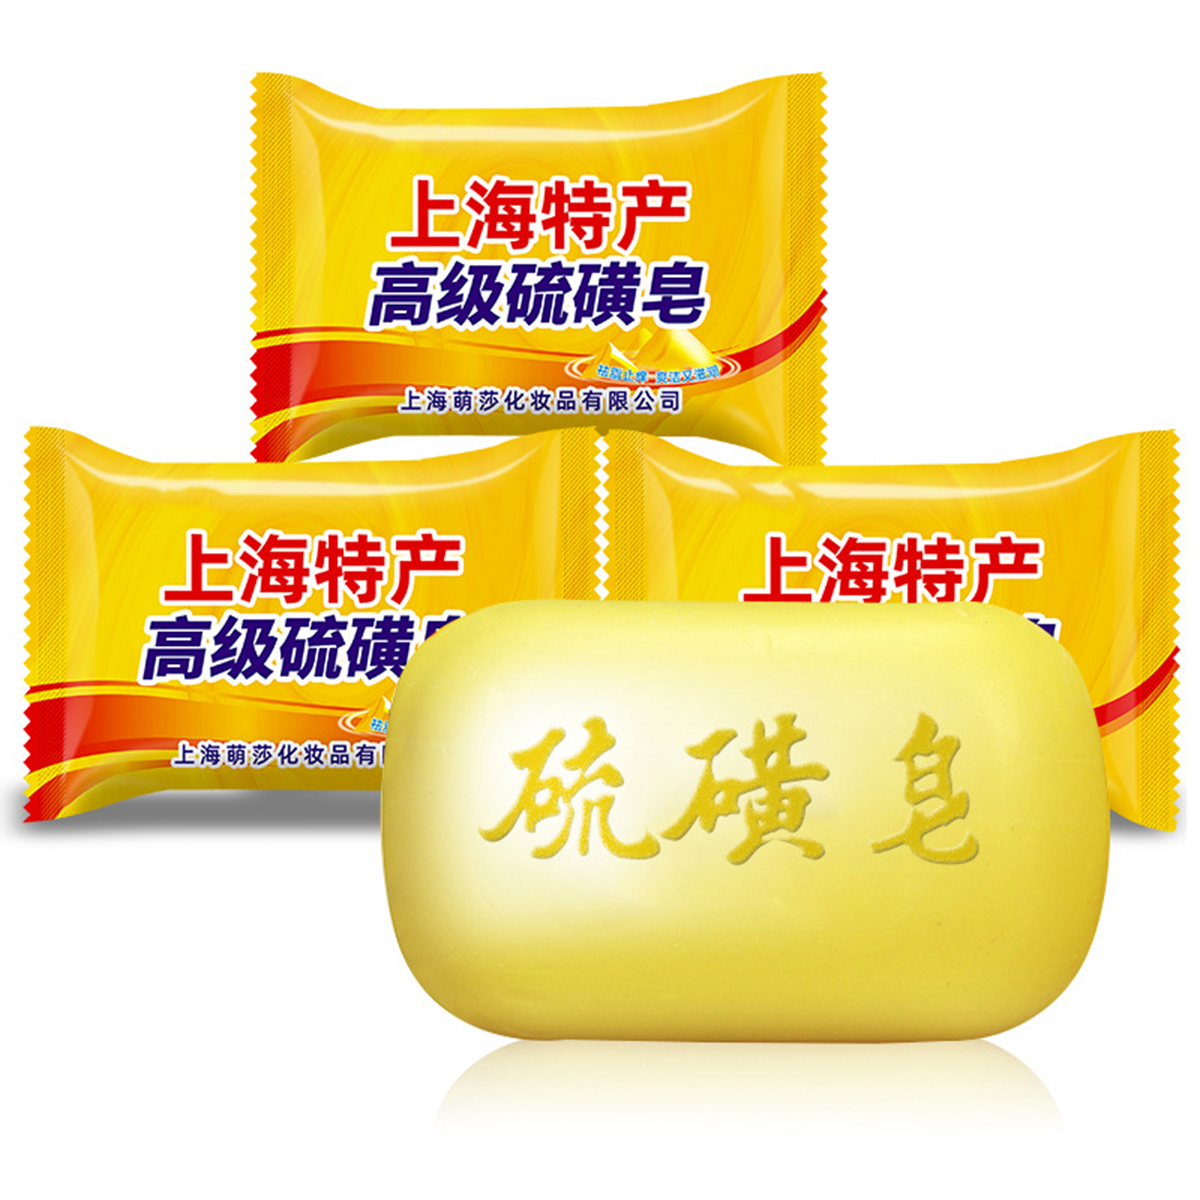 Sulfur Soap Itching Relief Soap For Body Hand Cleansing Bathing Antioxidant BacteriumSoothing Mite  Sulfur Soap Cleansing Soap